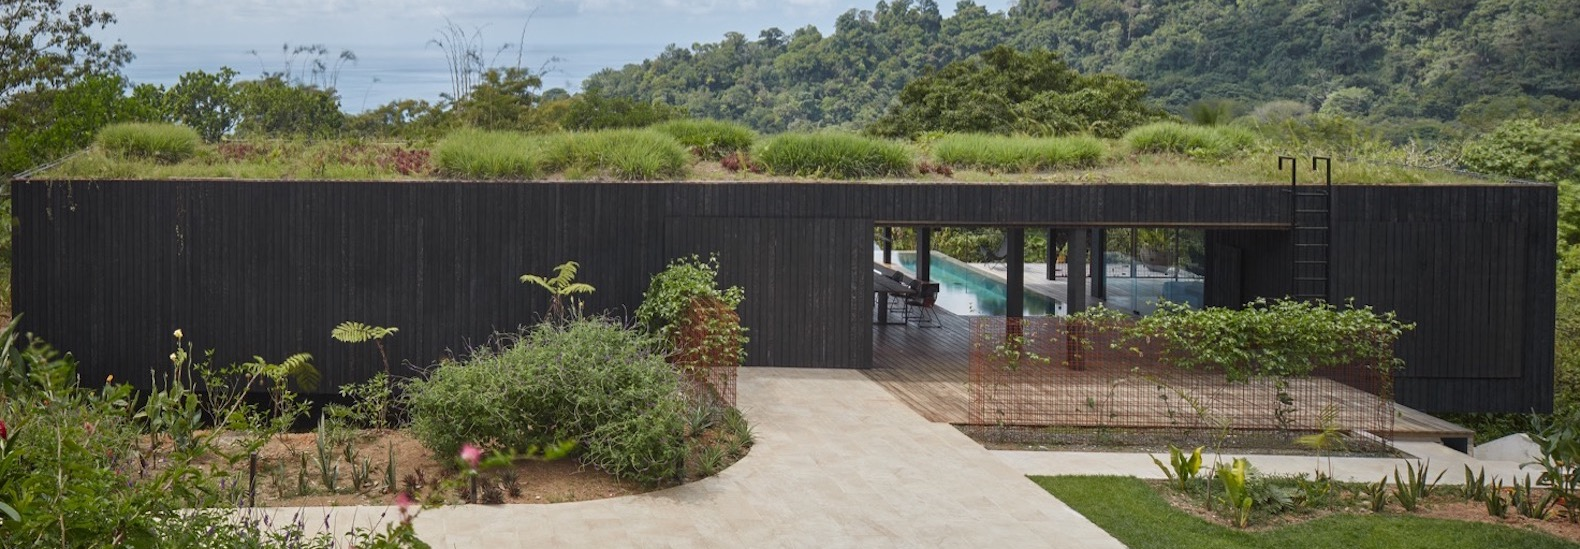 Green-roofed villa blends into a Costa Rican jungle landscape